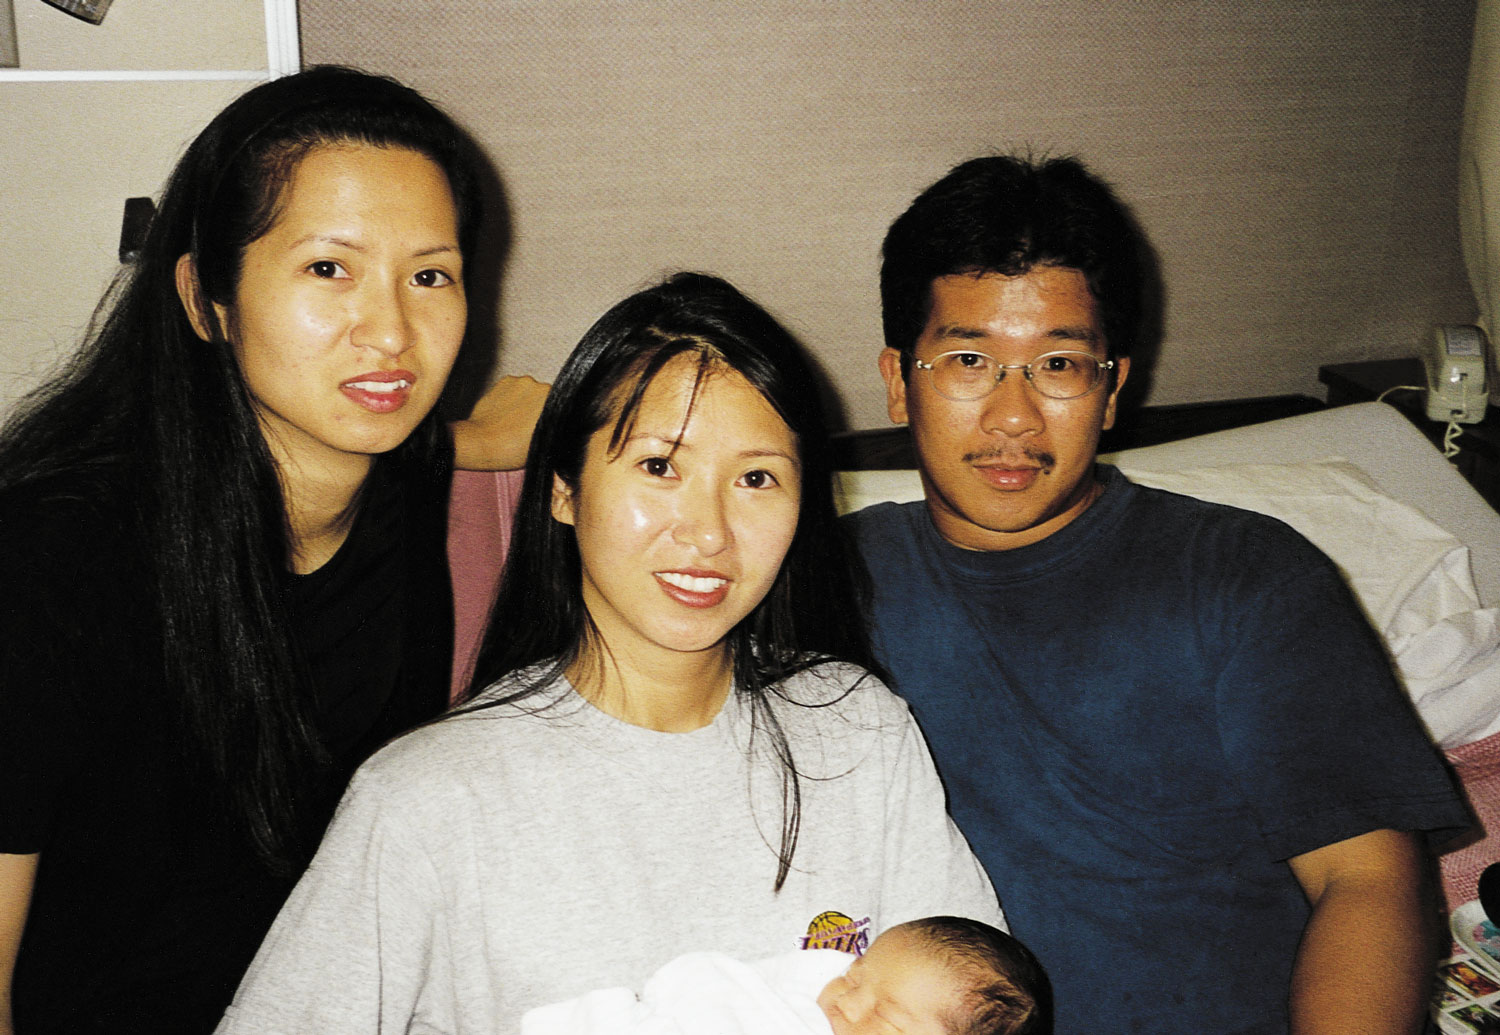 This last photo taken of Joseph (right) shows him with sisters Carmina and Raquel and newborn nephew Gabriel.